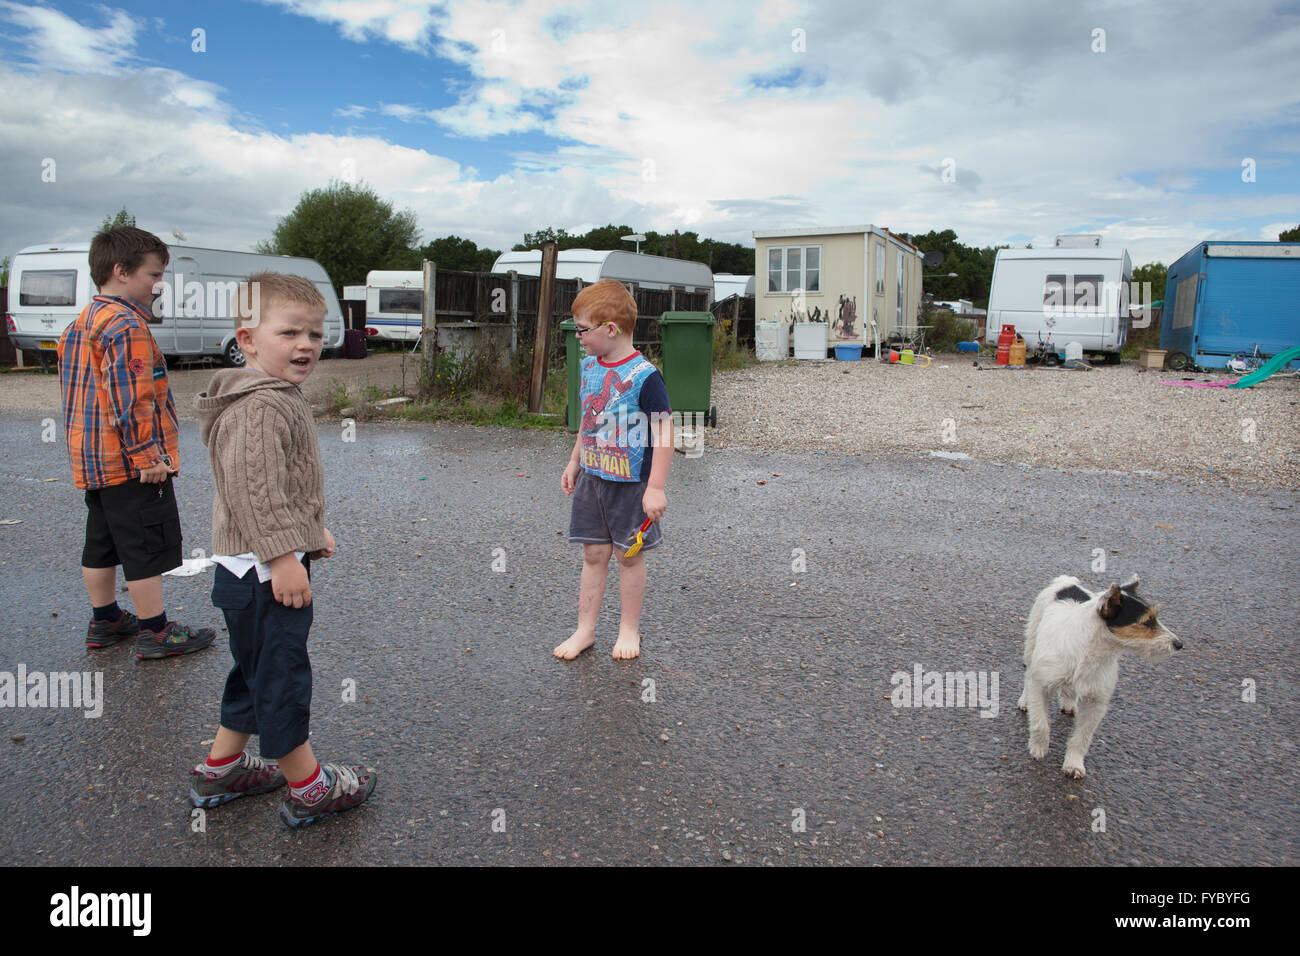 Dale Farm, on the outskirts of  Basildon, Essex, the largest Irish Traveller and Gypsy site in Europe - Stock Image